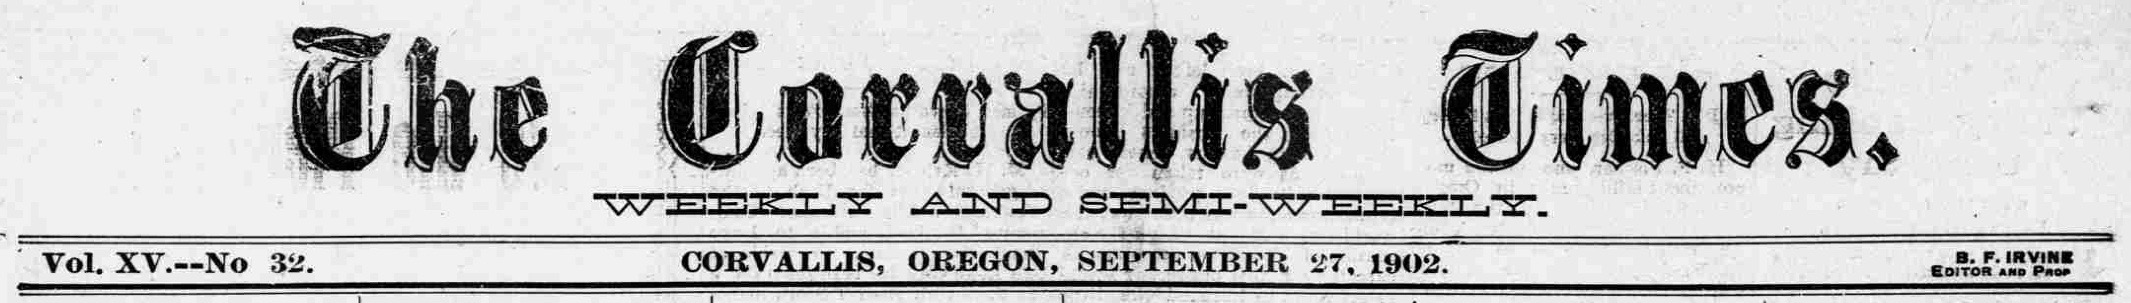 The Corvallis times. (Corvallis, Or.) September 27, 1902, Image 1. http://oregonnews.uoregon.edu/lccn/sn2002060538/1902-09-27/ed-1/seq-1/